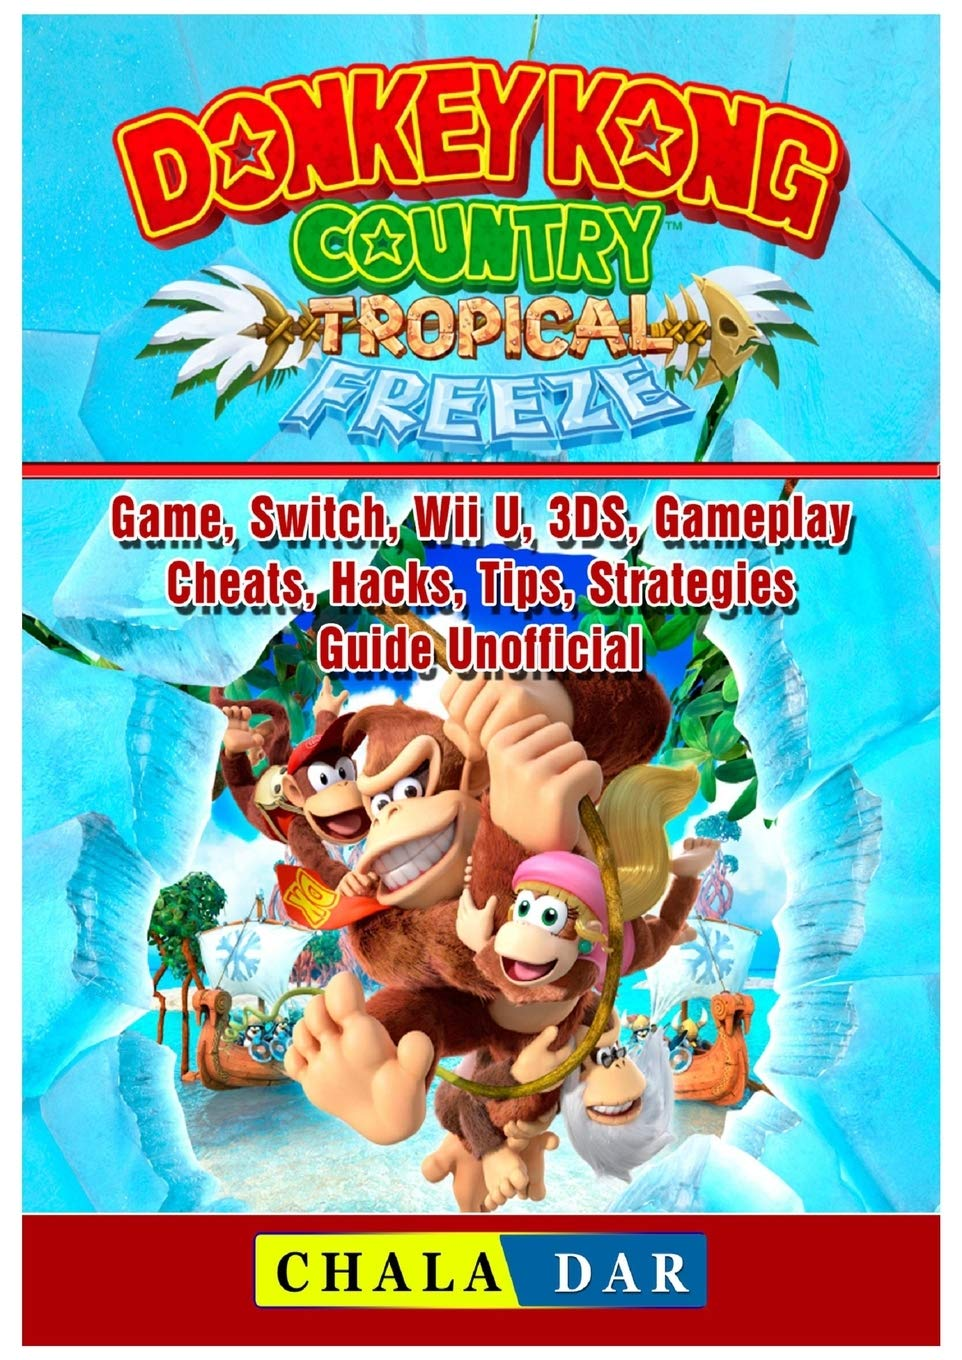 Donkey Kong Country Tropical Freeze Game, Switch, Wii U, 3DS, Gameplay, Cheats, Hacks, Strategies, Guide Unofficial: Amazon.es: Dar, Chala: Libros en idiomas extranjeros